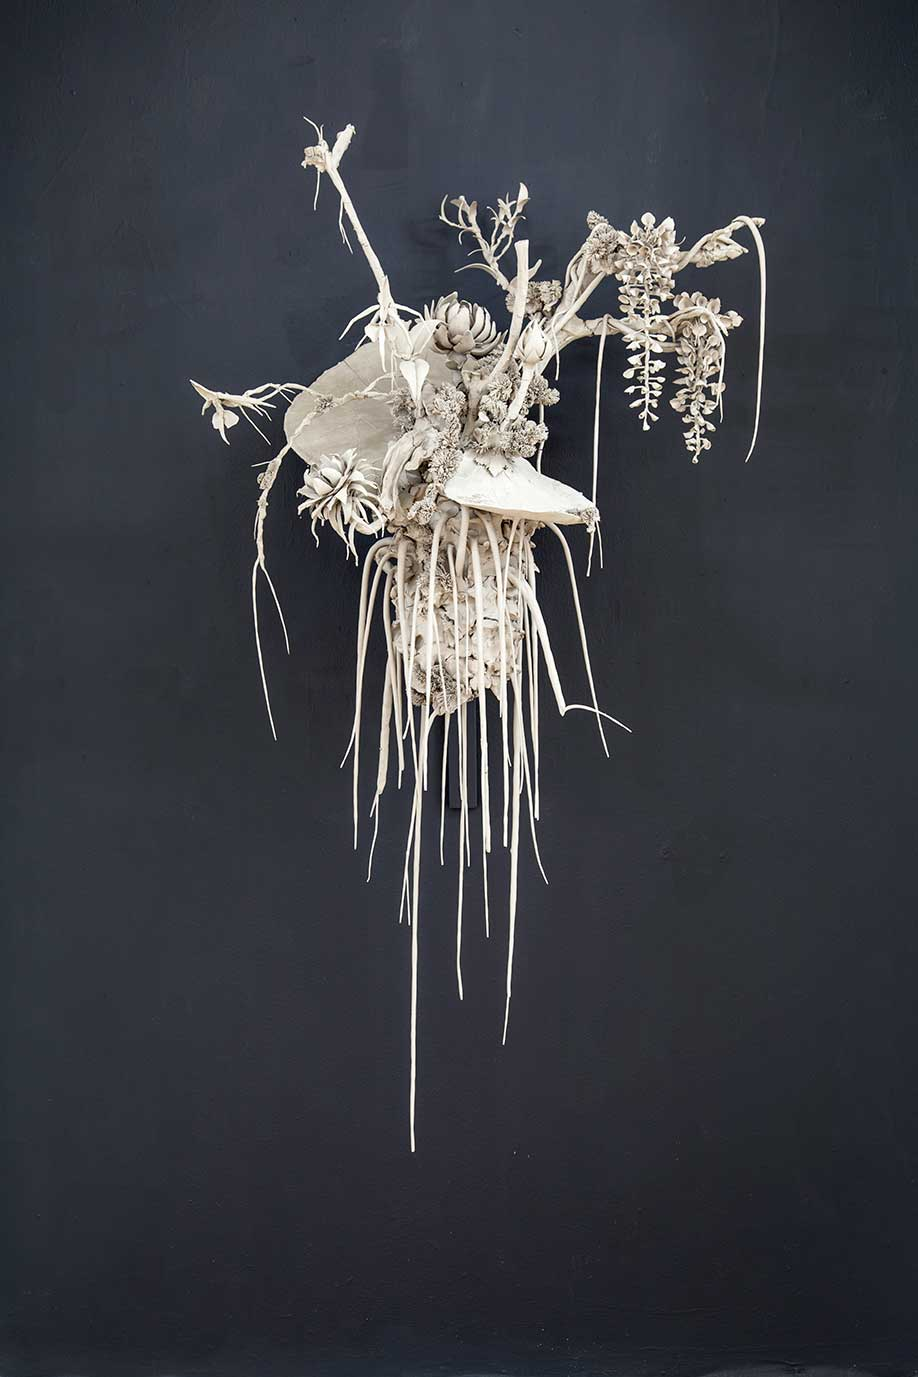 <b>Title: </b>Nocturne <br /><b>Year: </b>2016<br /><b>Medium: </b>Clay, wire and steel <br /><b>Size: </b>60 x 70 x 30cm